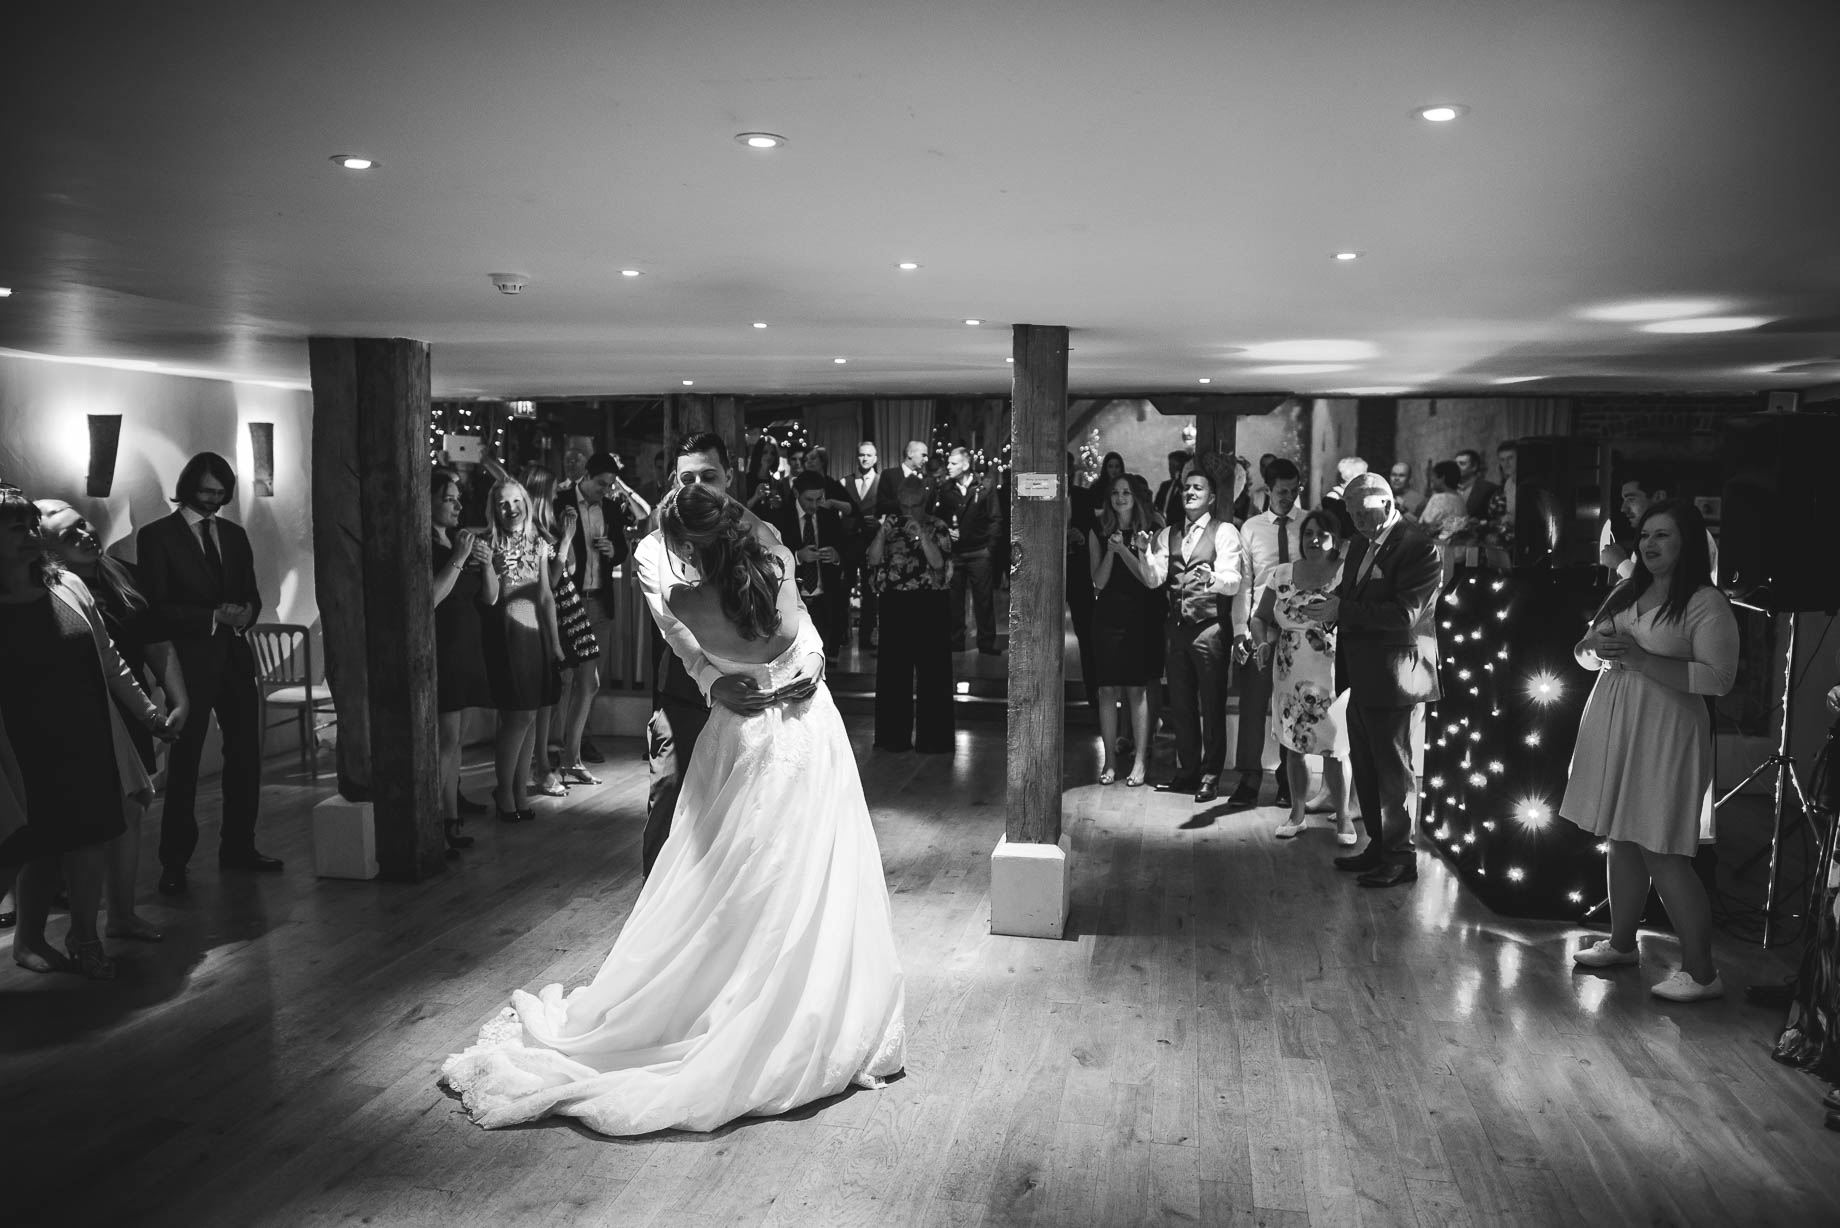 Bury Court Barn wedding photography - Guy Collier - Kirsty and Lewis (142 of 150)